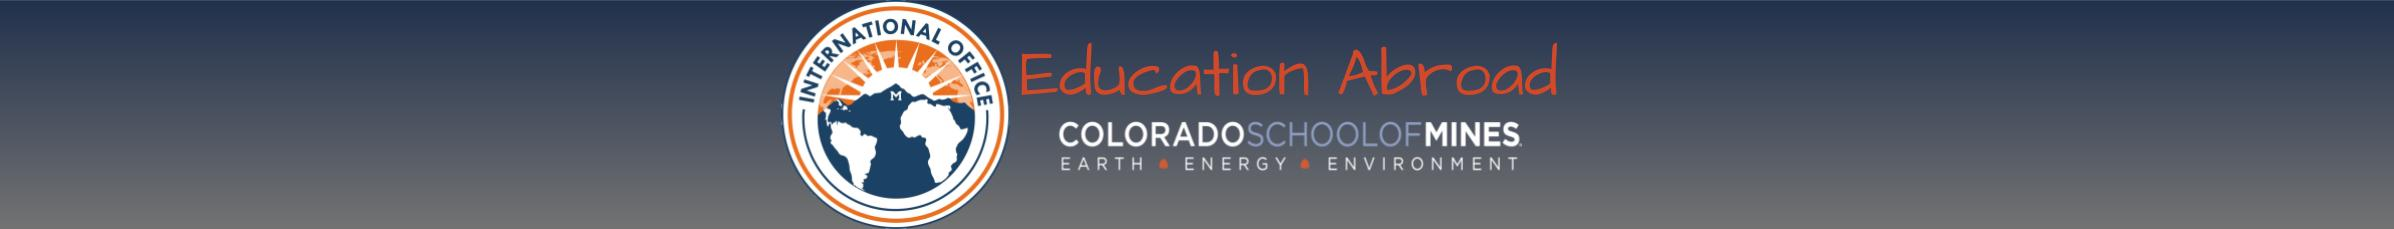 Education Abroad - Colorado School of Mines